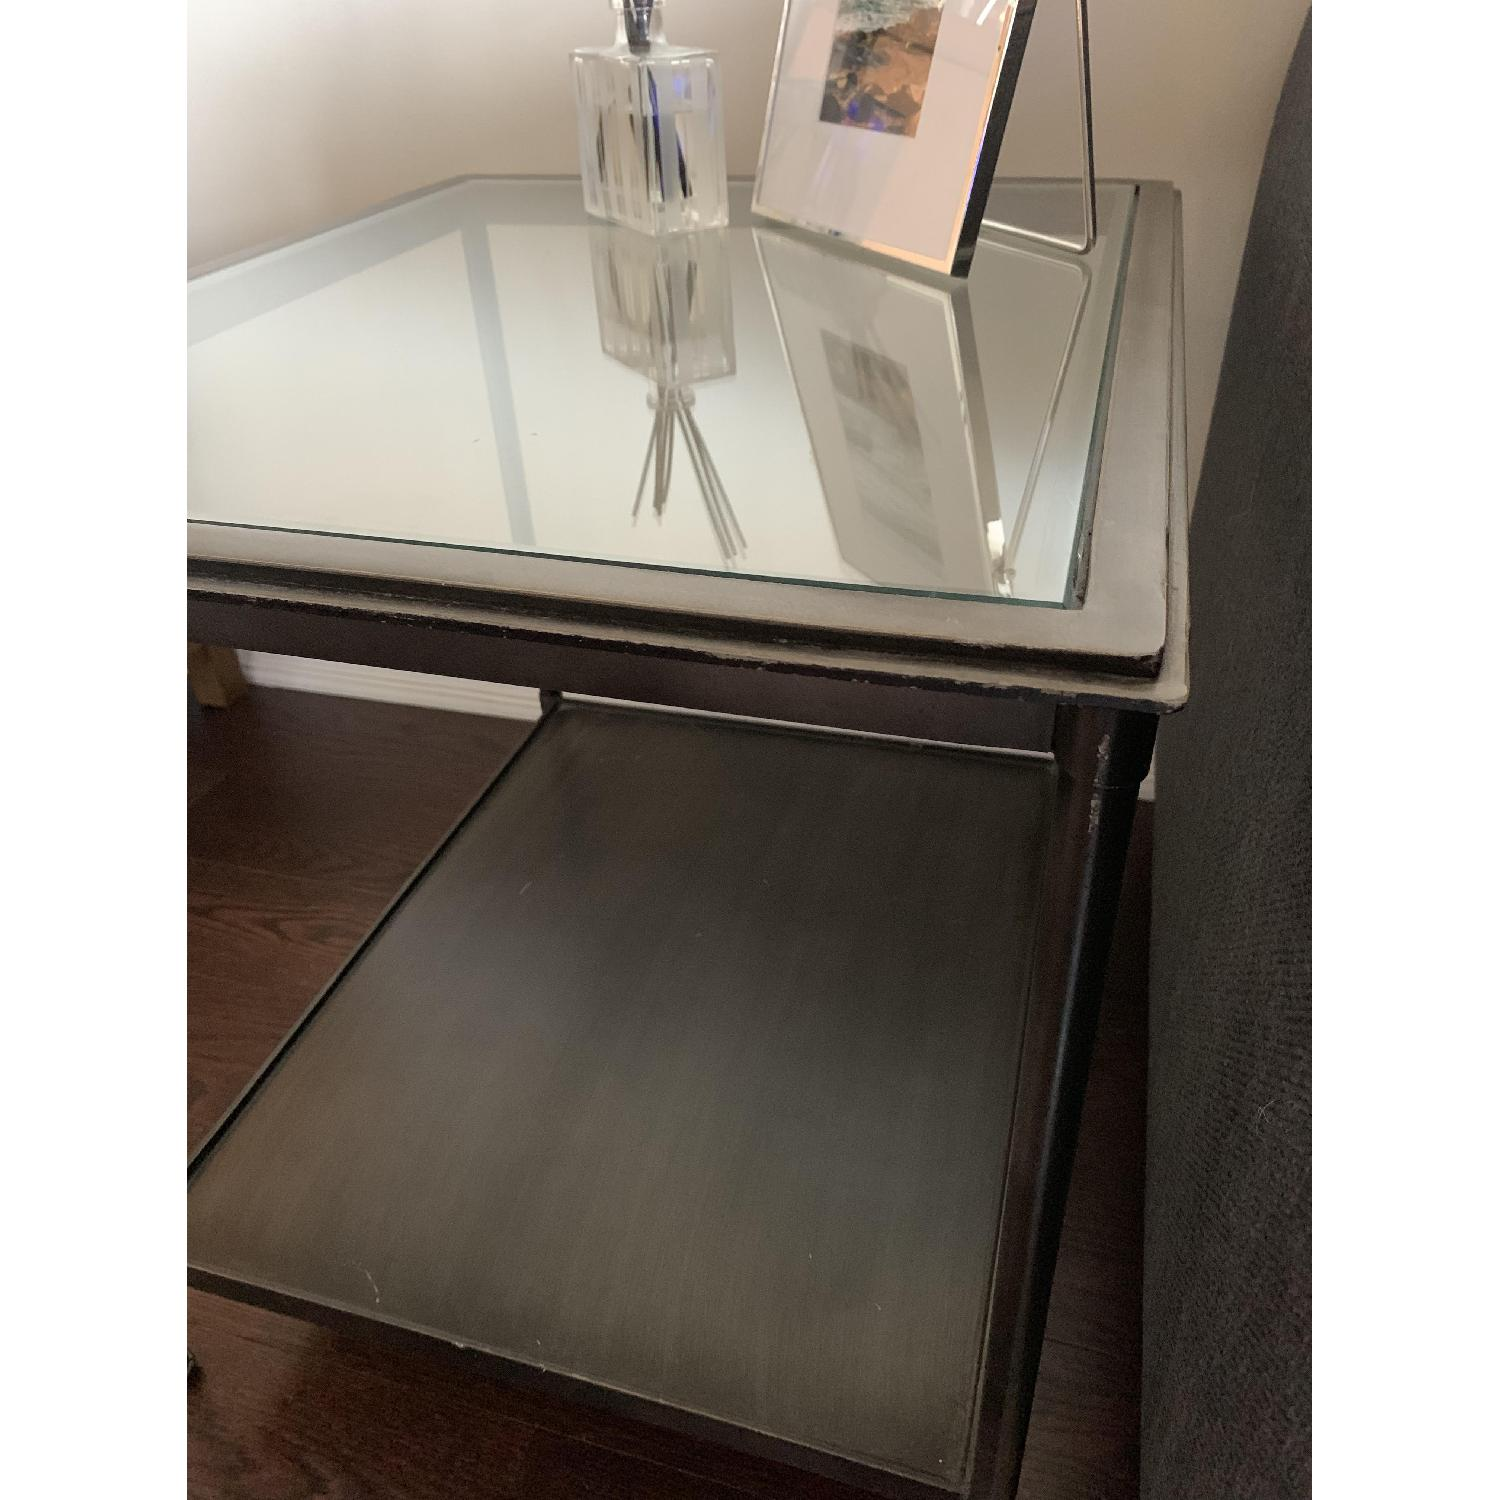 Crate & Barrel Kyra Steel & Glass End Table - image-2